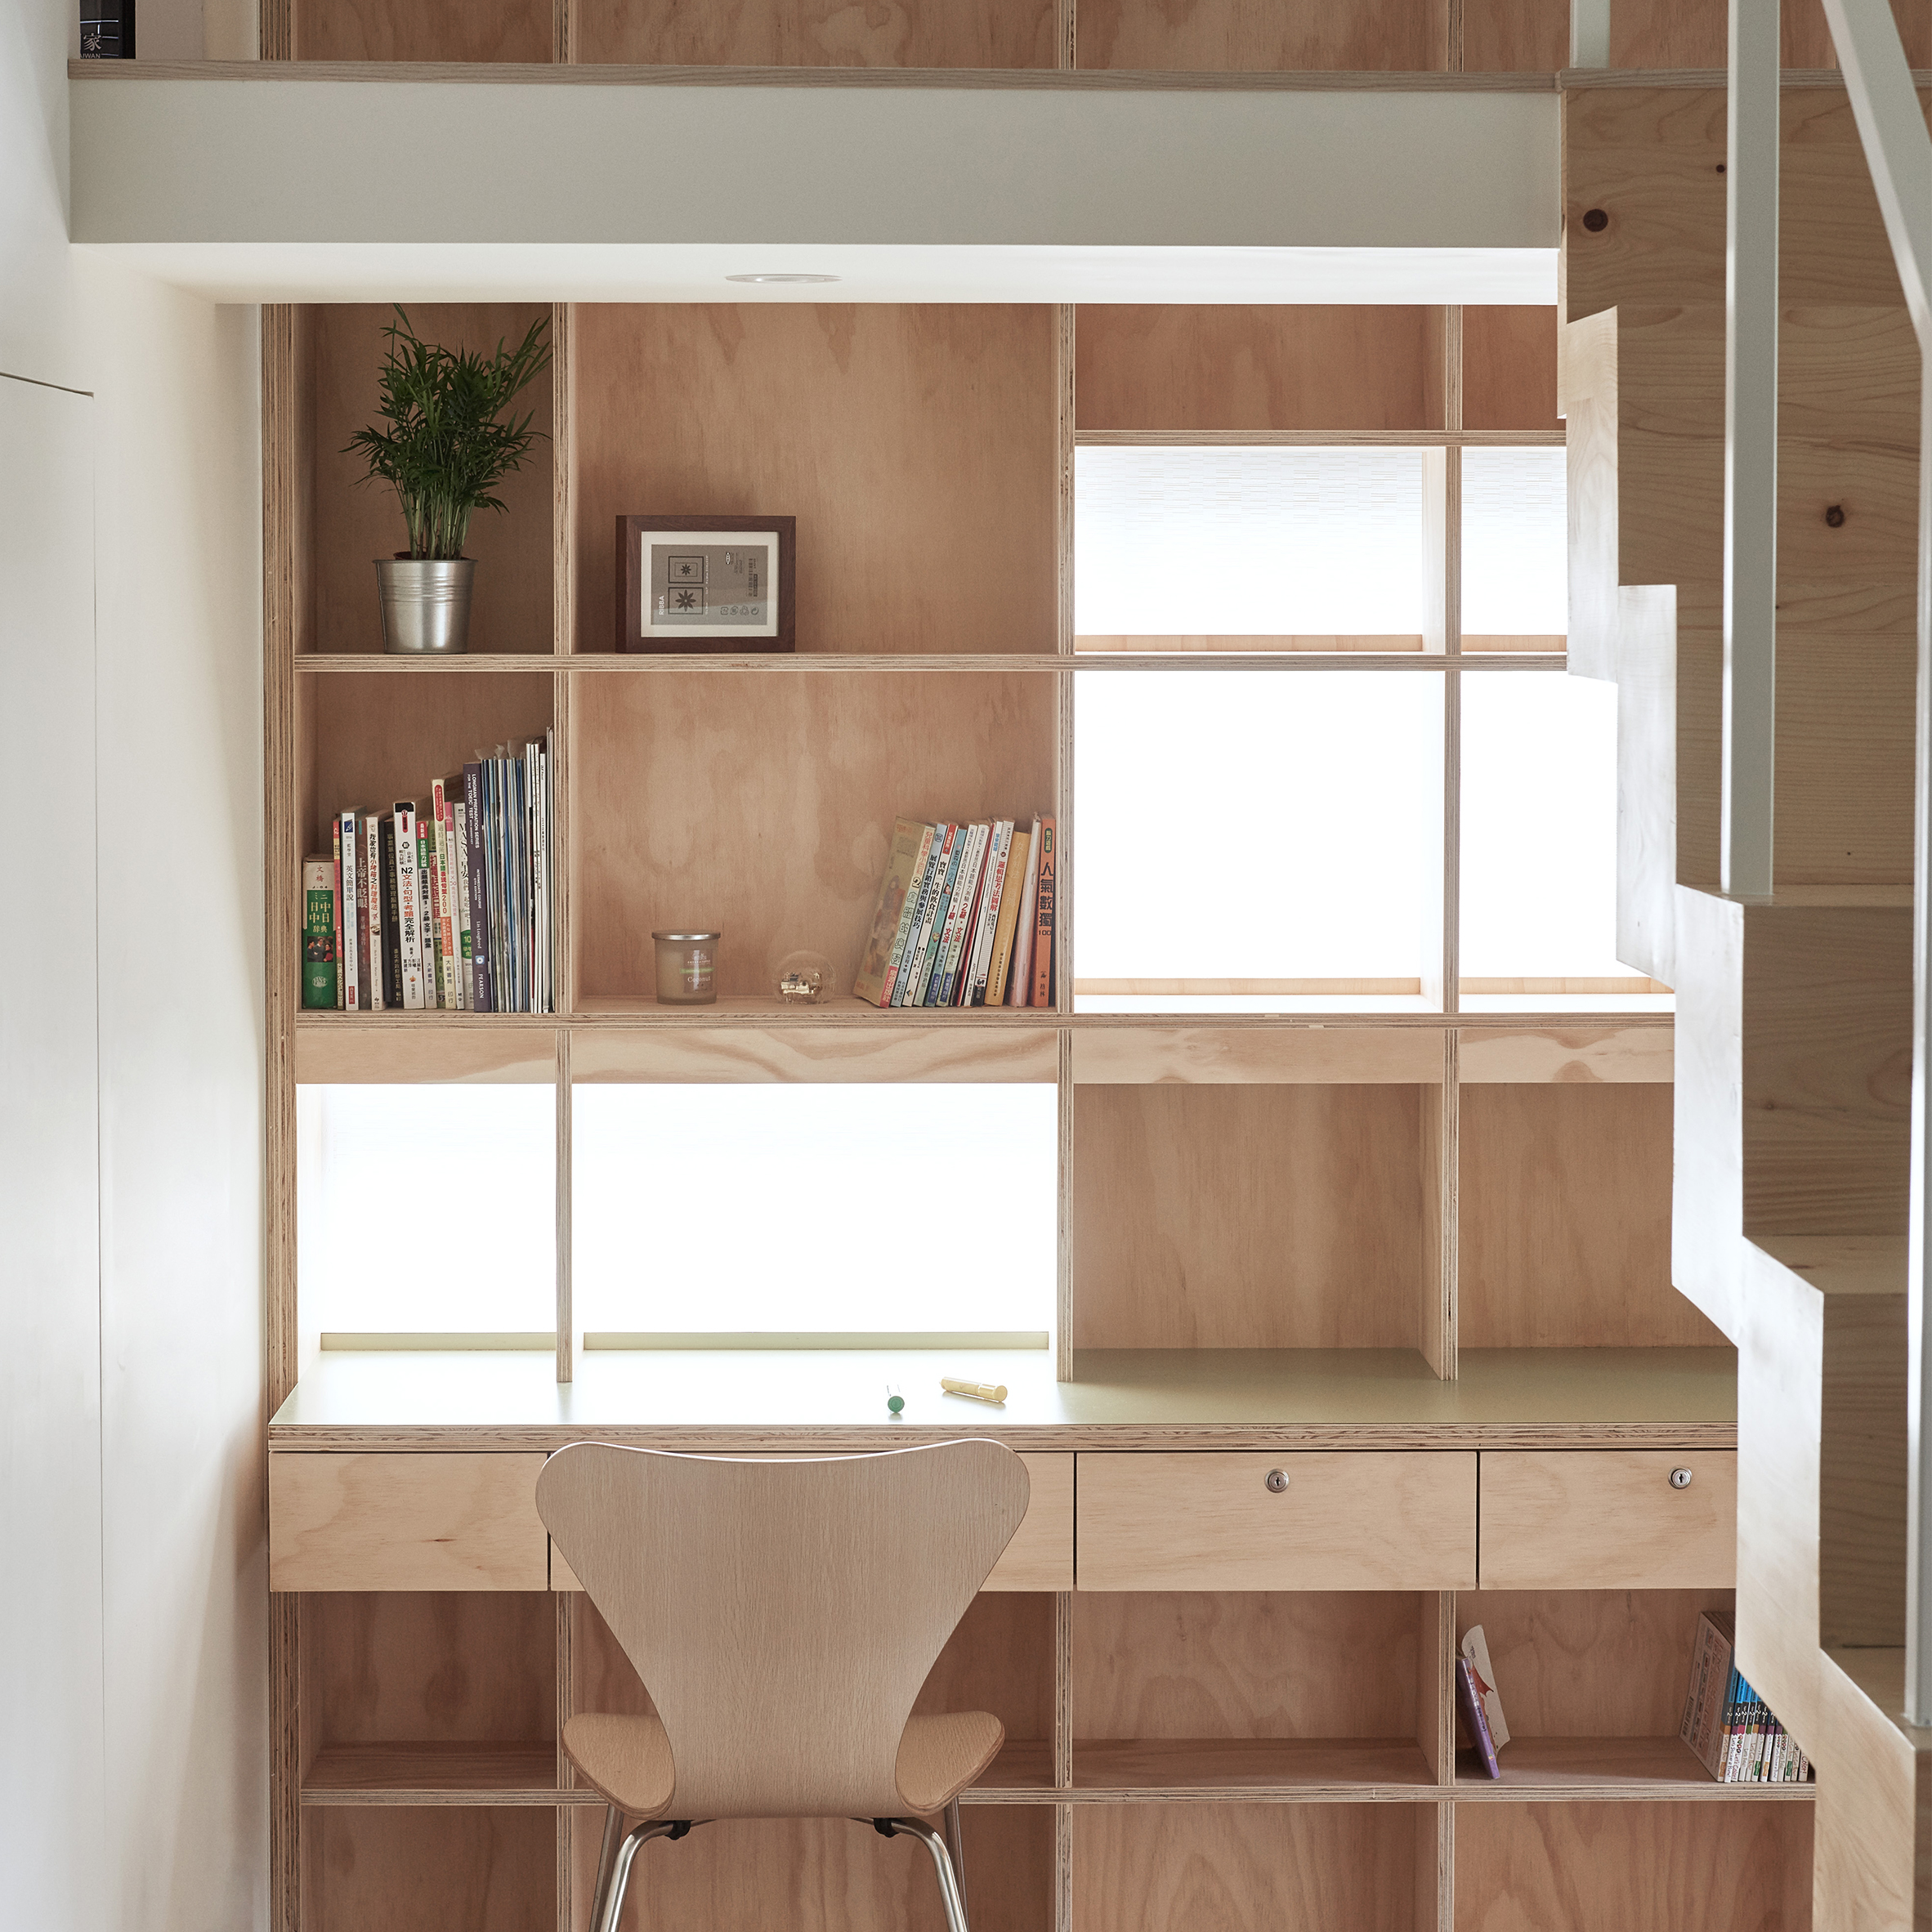 Storage Solutions 10 Of The Most Popular Homes With Clever Storage On Pinterest